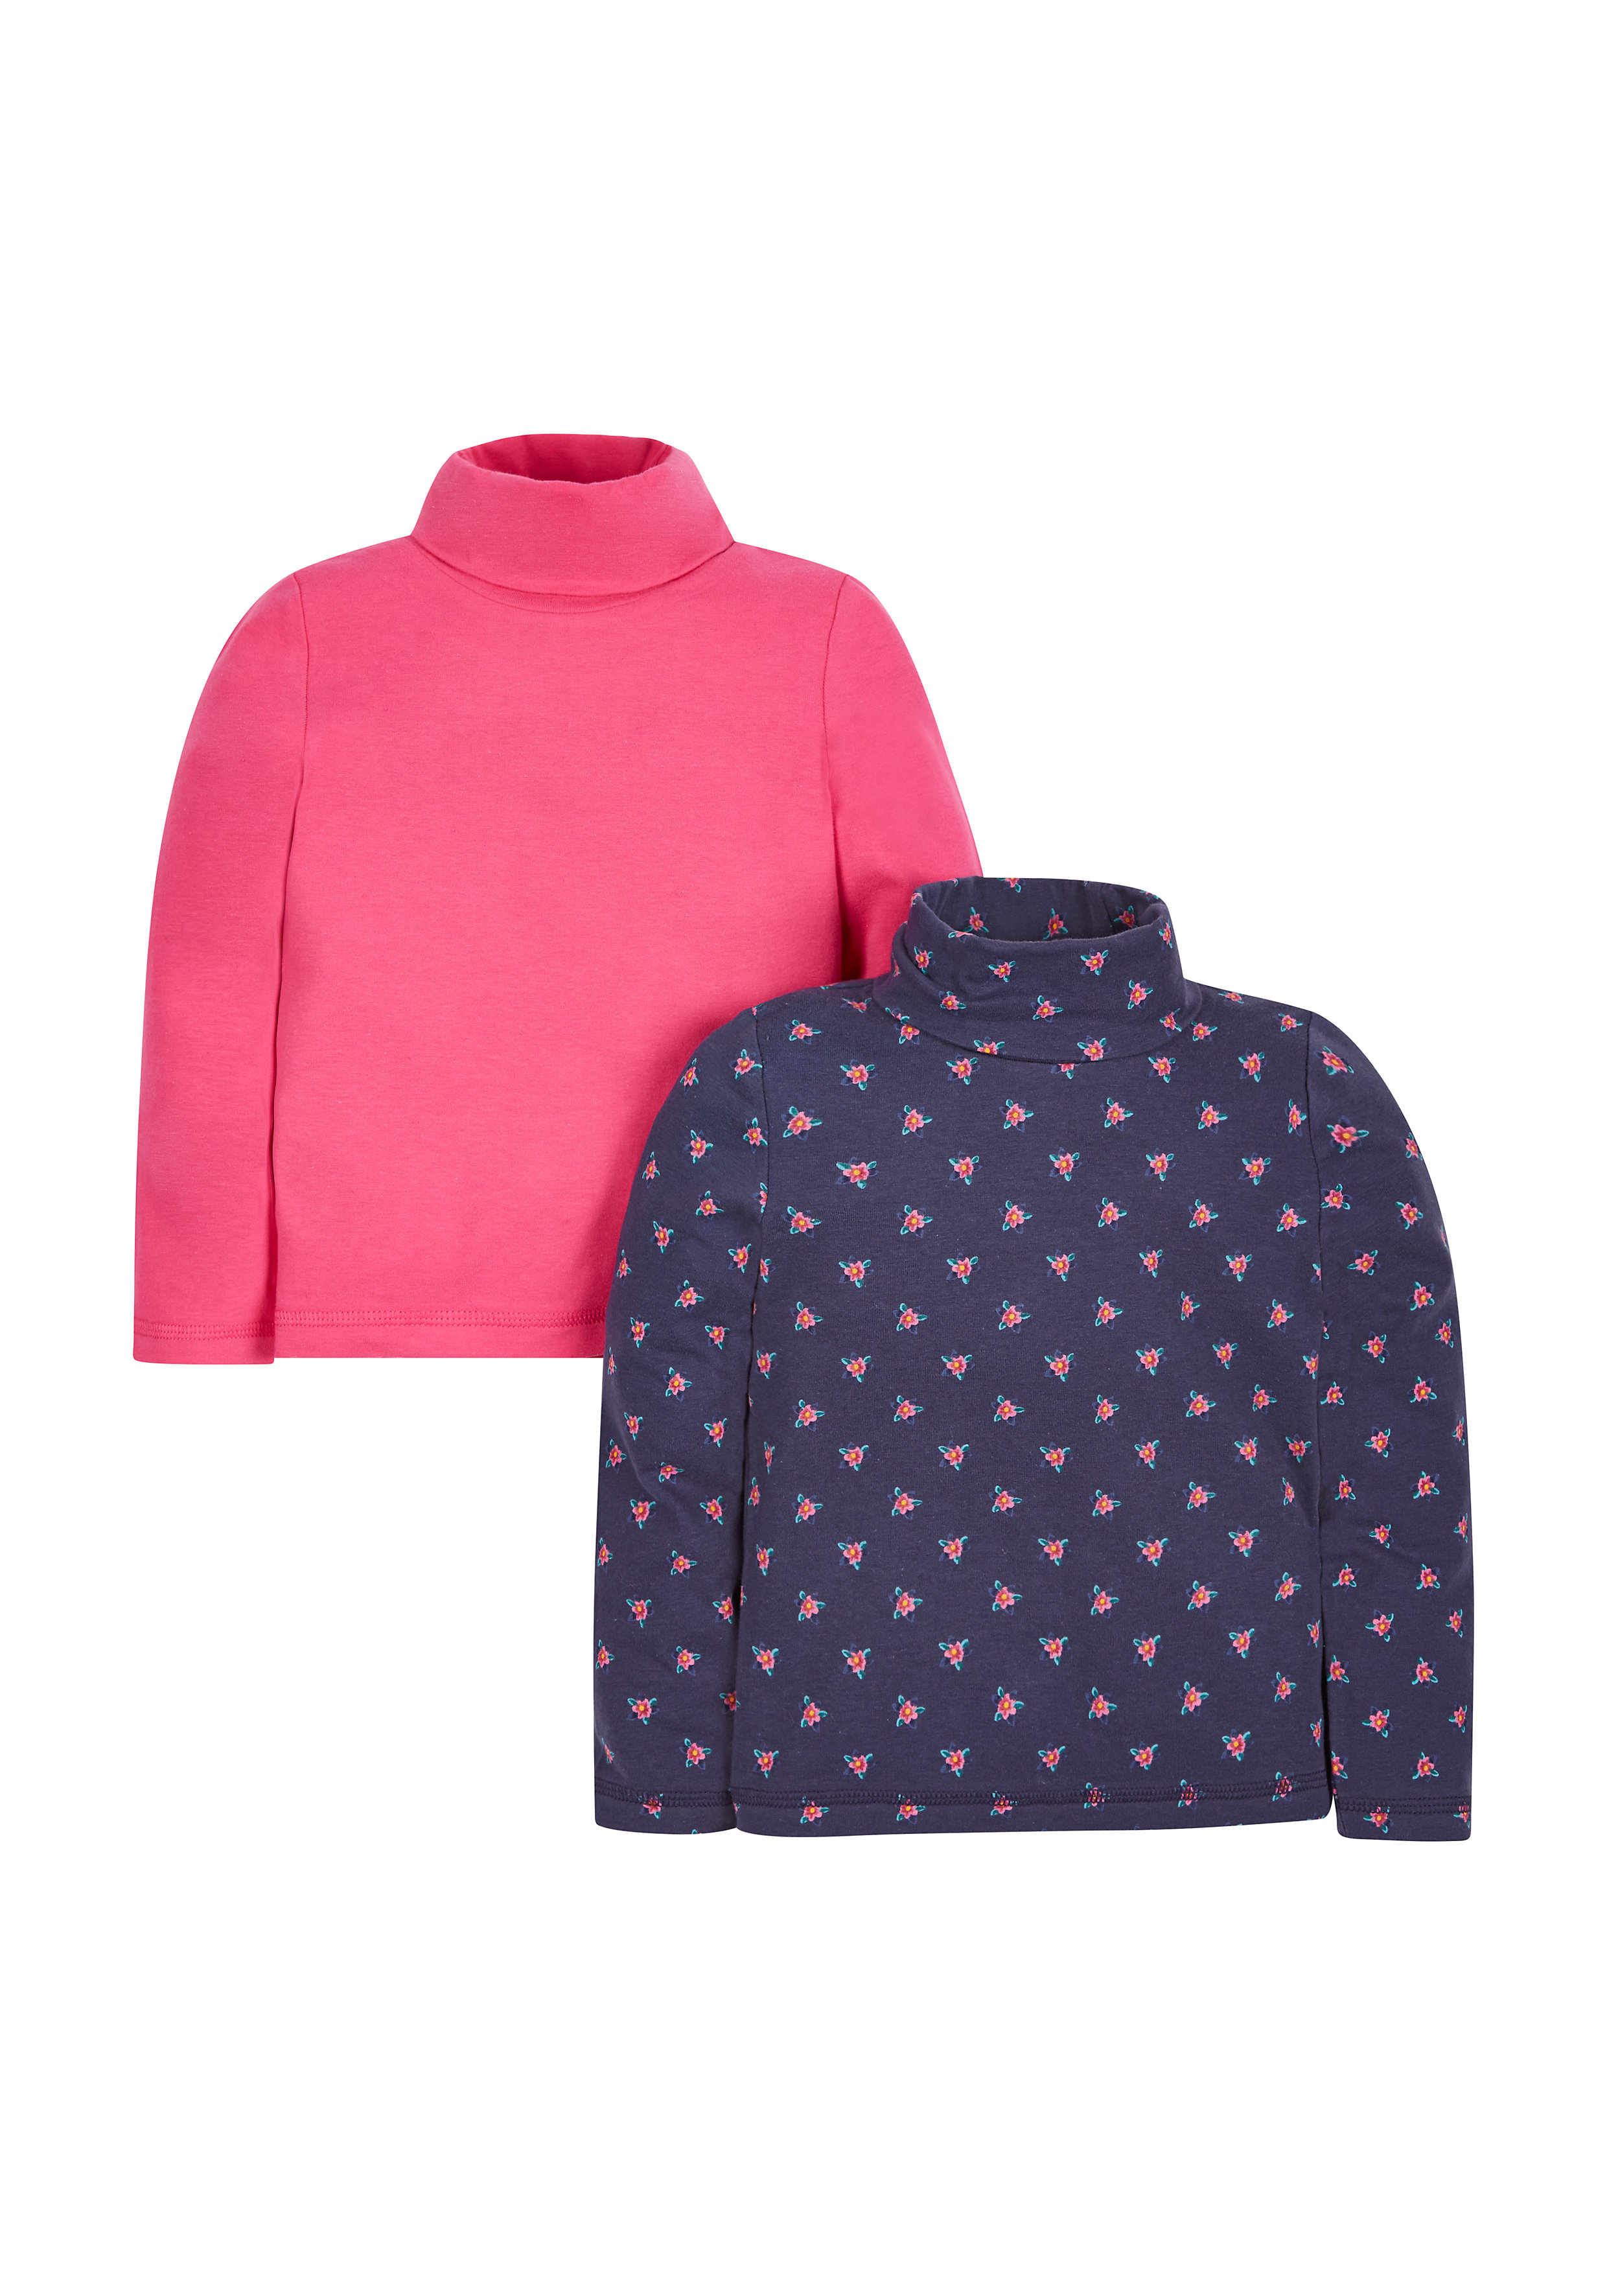 Mothercare | Girls Full Sleeves Roll Neck Top Floral Print - Pack Of 2 - Multicolor